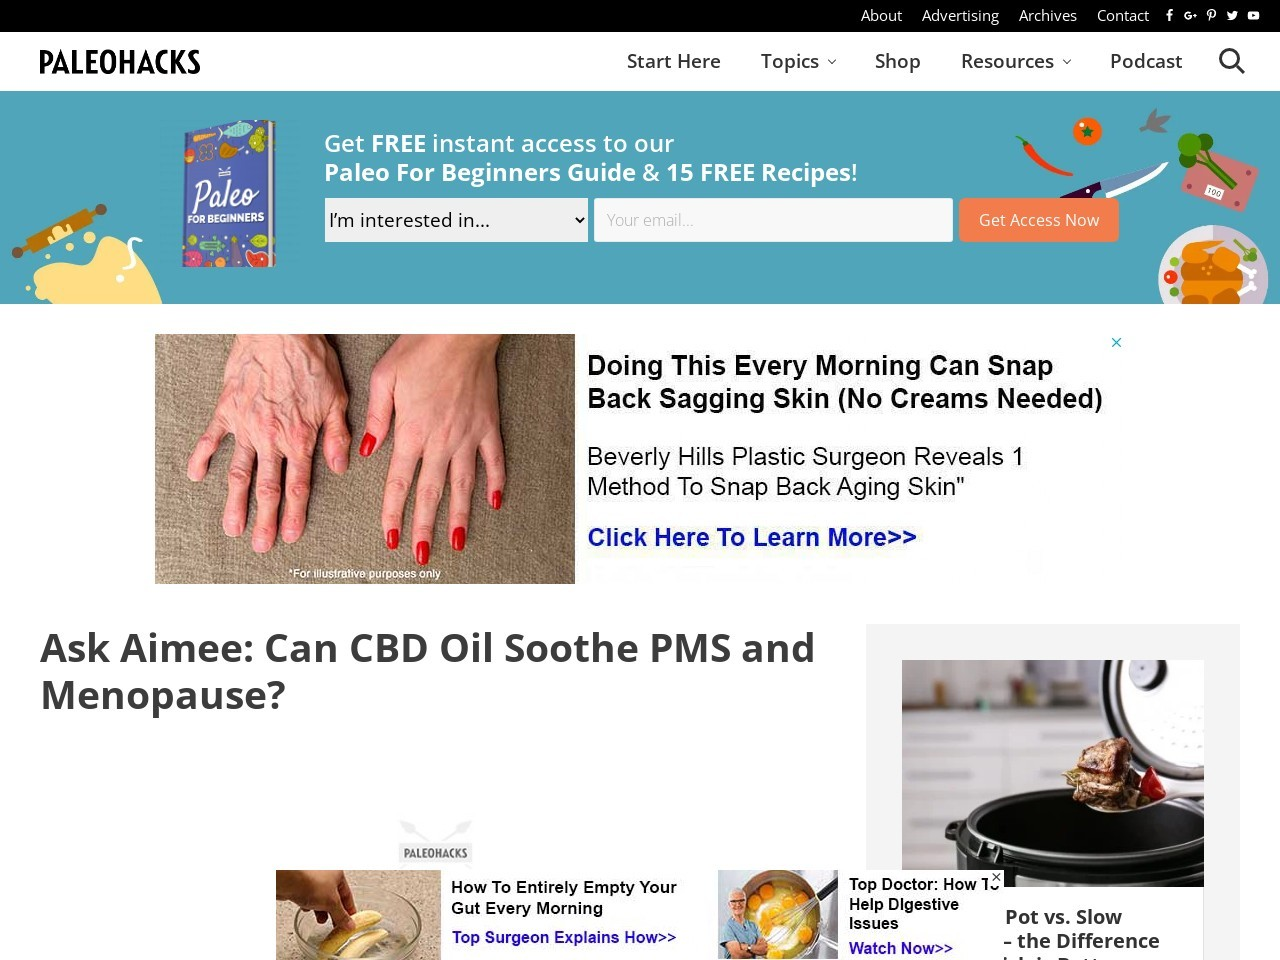 Ask Aimee: Can CBD Oil Soothe PMS and Menopause?